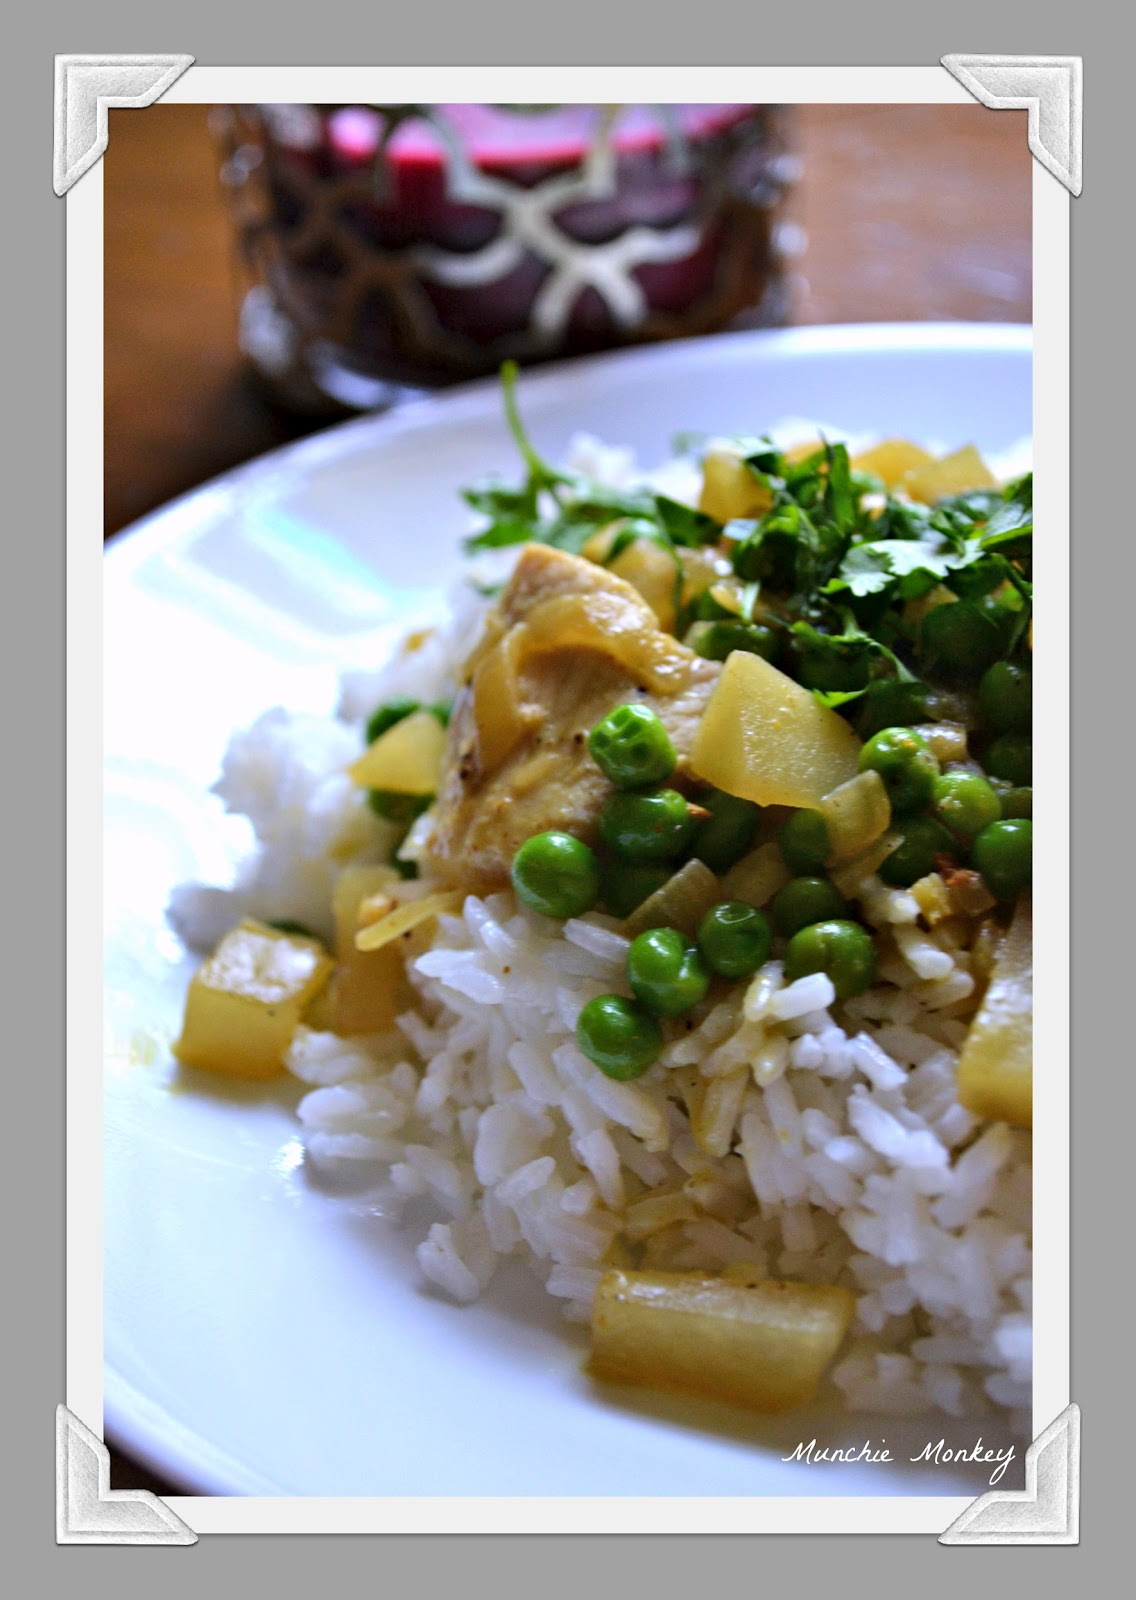 munchie monkey: Chicken With Potatoes, Peas & Coconut-Curry Sauce